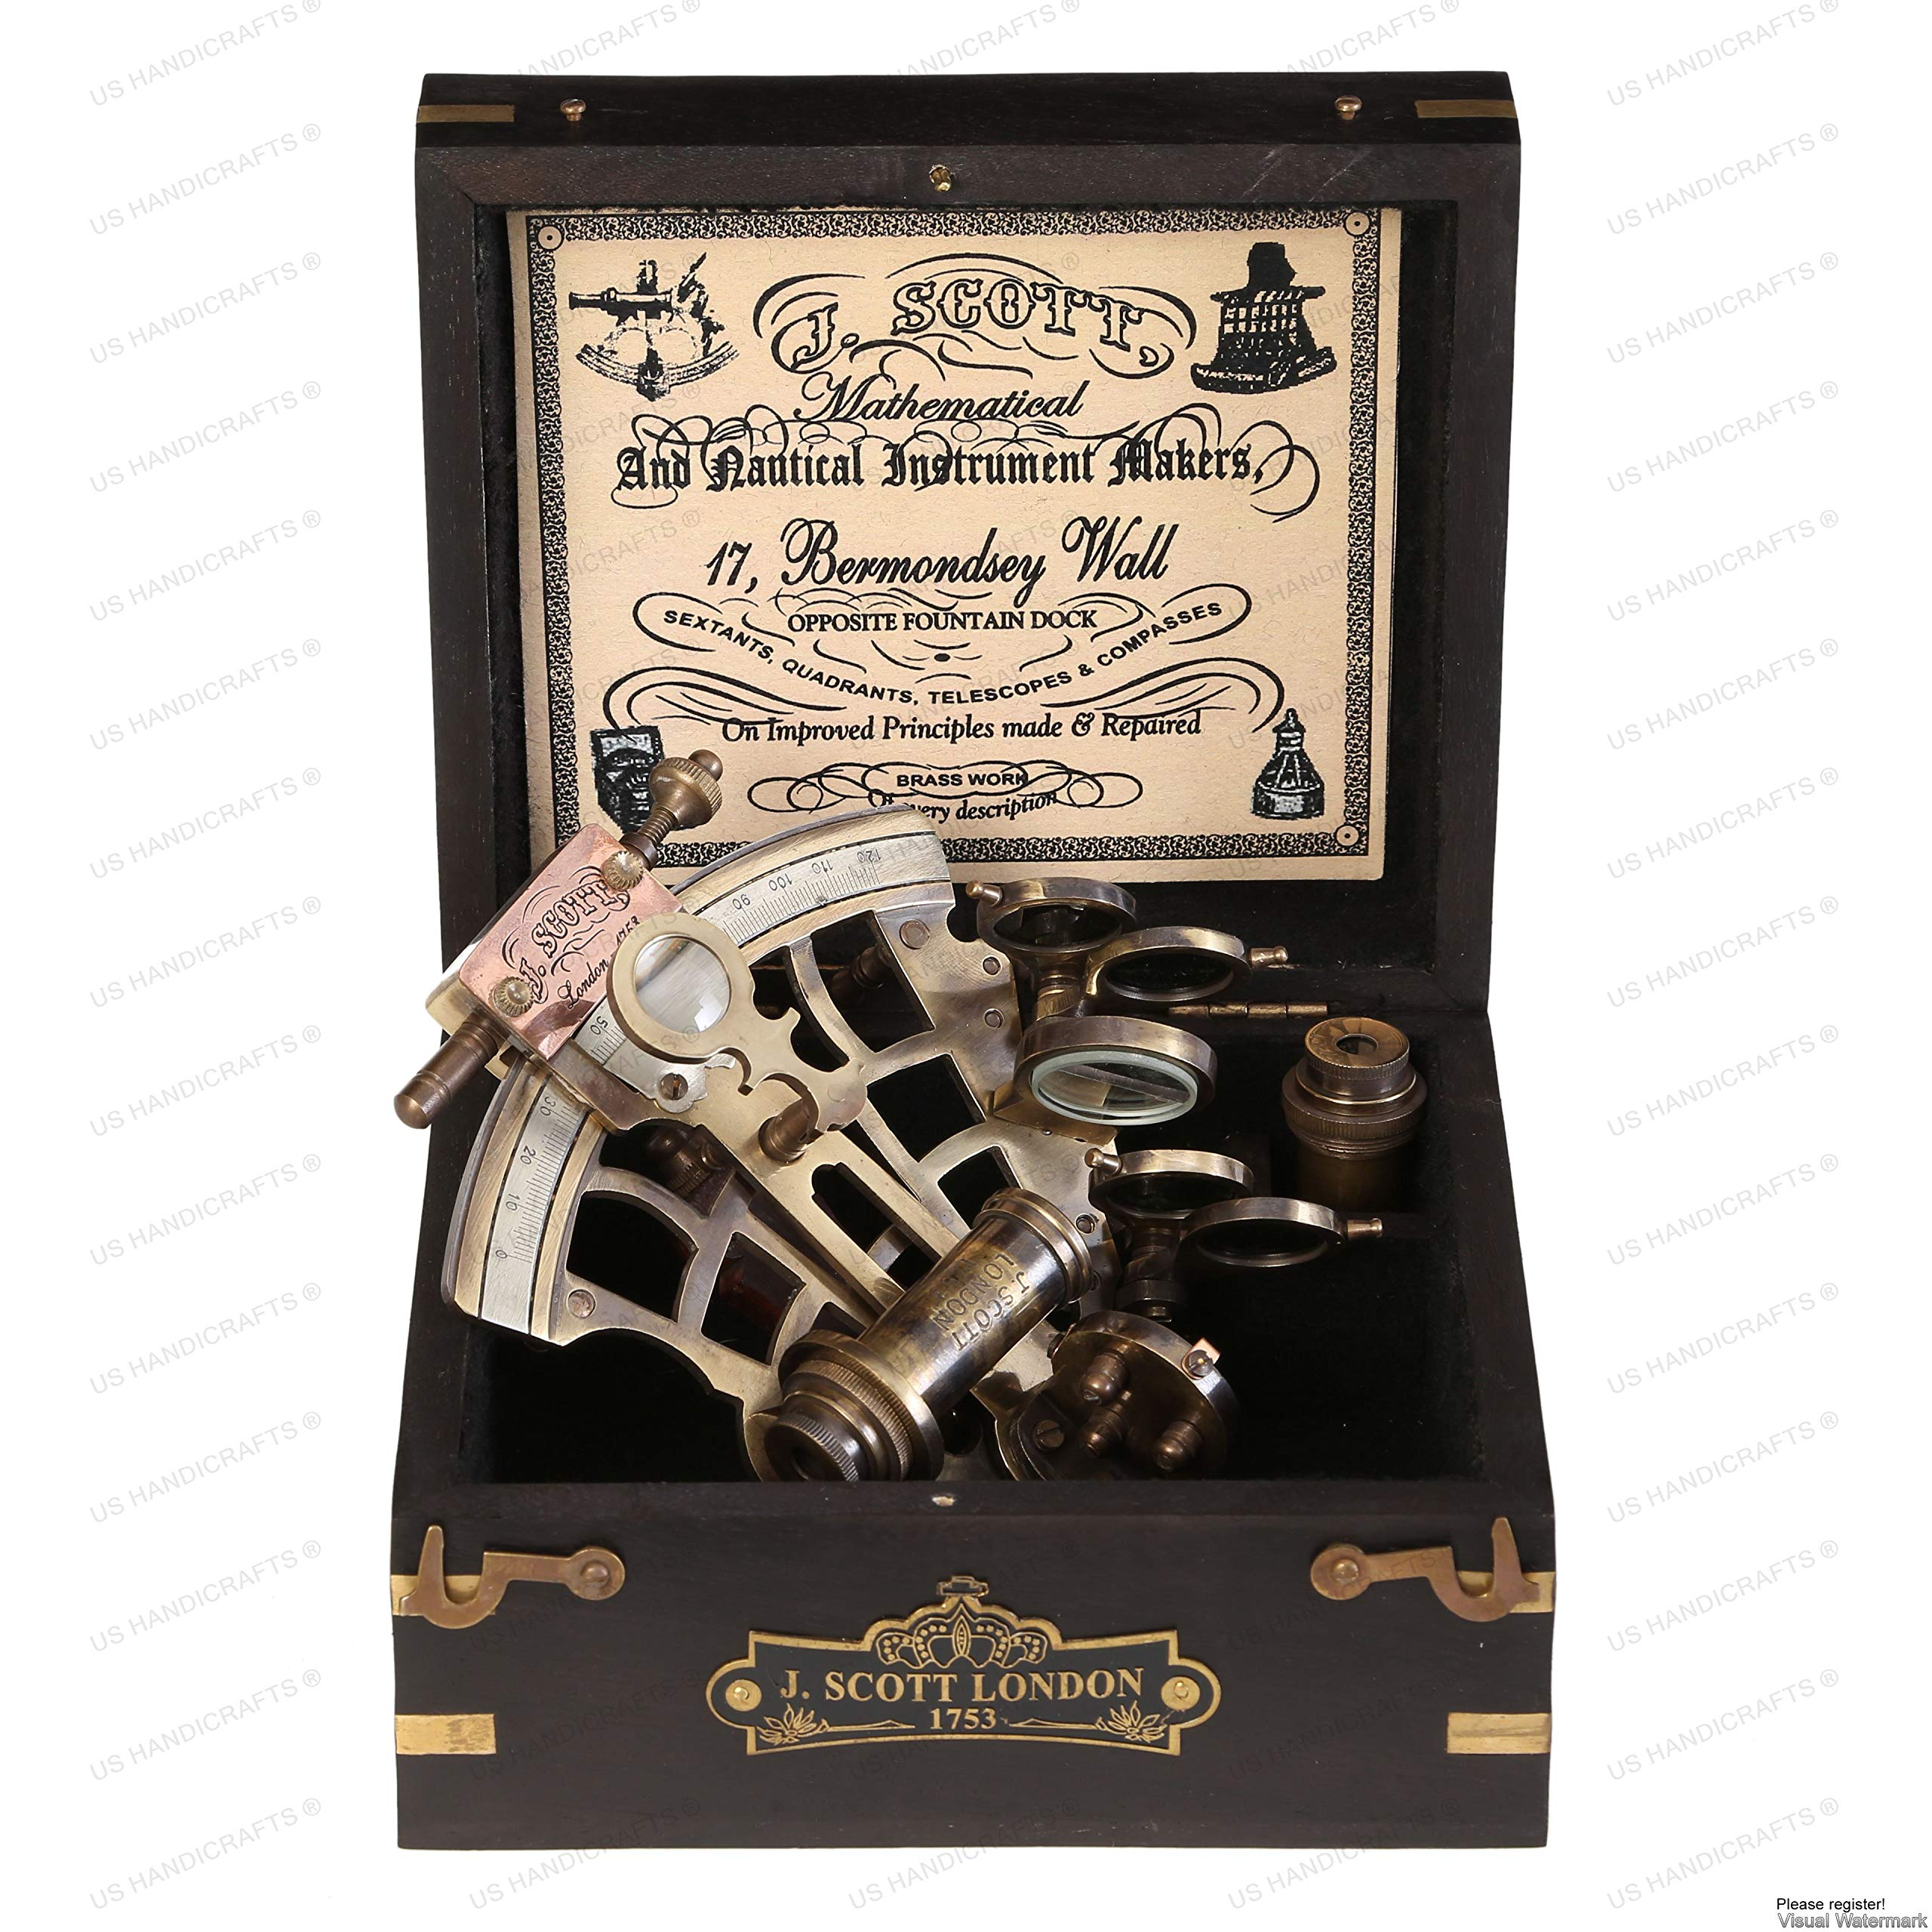 J. Scott London Brass Ship History Sextant with Hardwood Box. Vintage Solid Antique Brass Nautical Functional Maritime Sextant | Nautical Navy Decor Gifts. by US HANDICRAFTS